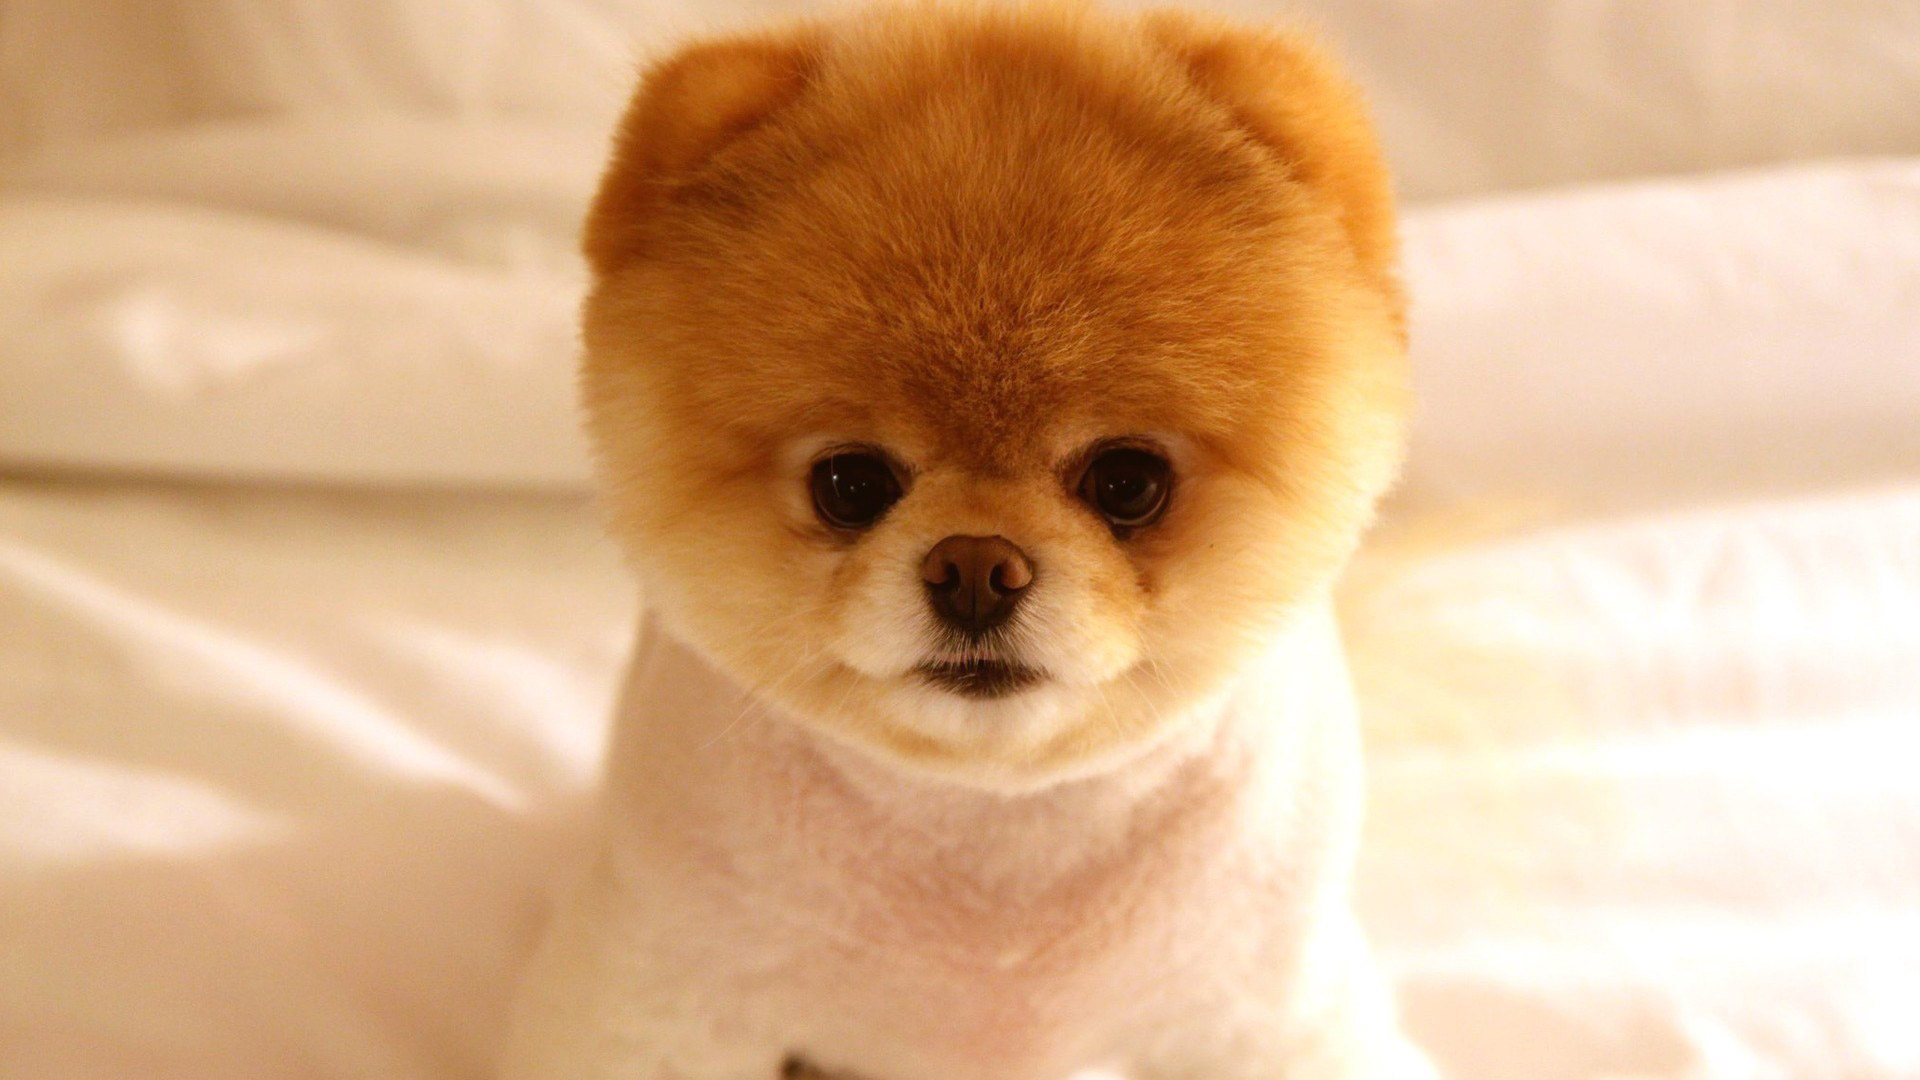 very cute little dog wallpapers55com   Best Wallpapers for PCs 1920x1080